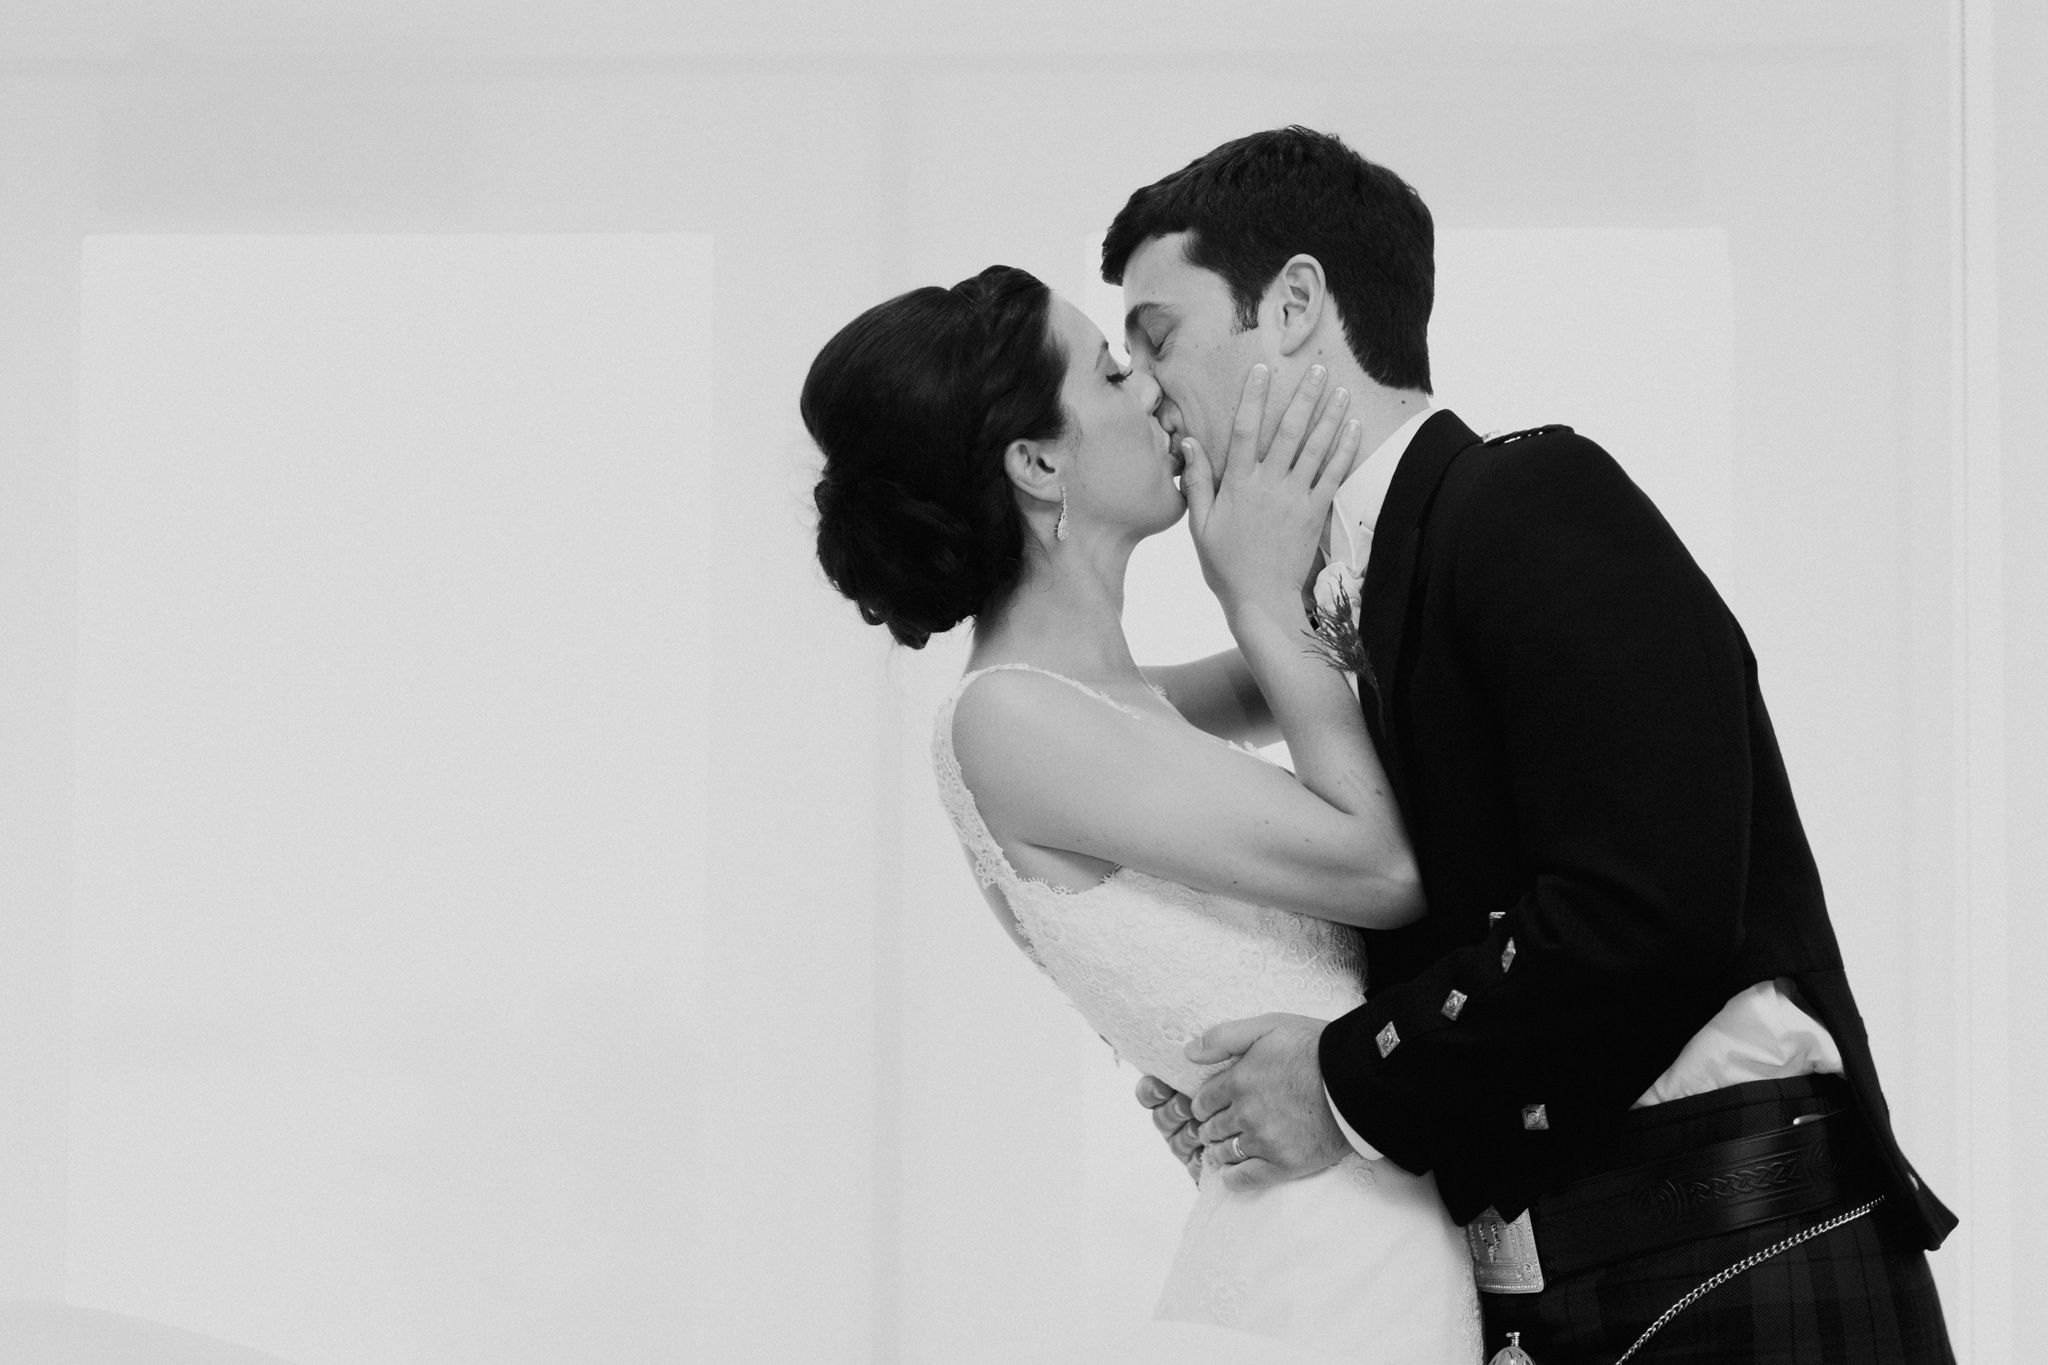 Black and white candid photo of bride and groom kissing romantic photograph